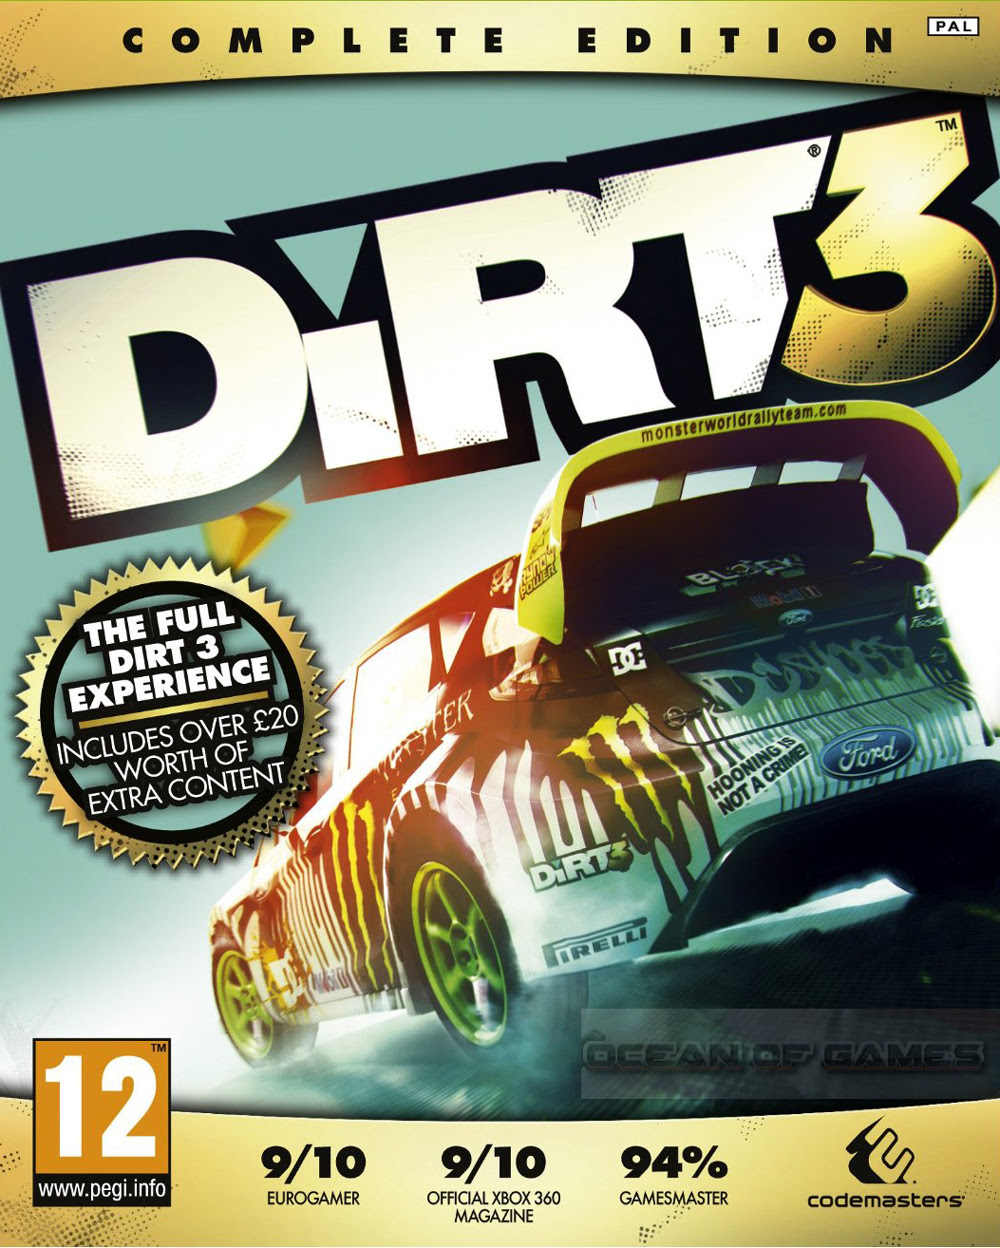 DiRT 3 Complete Edition Free Download